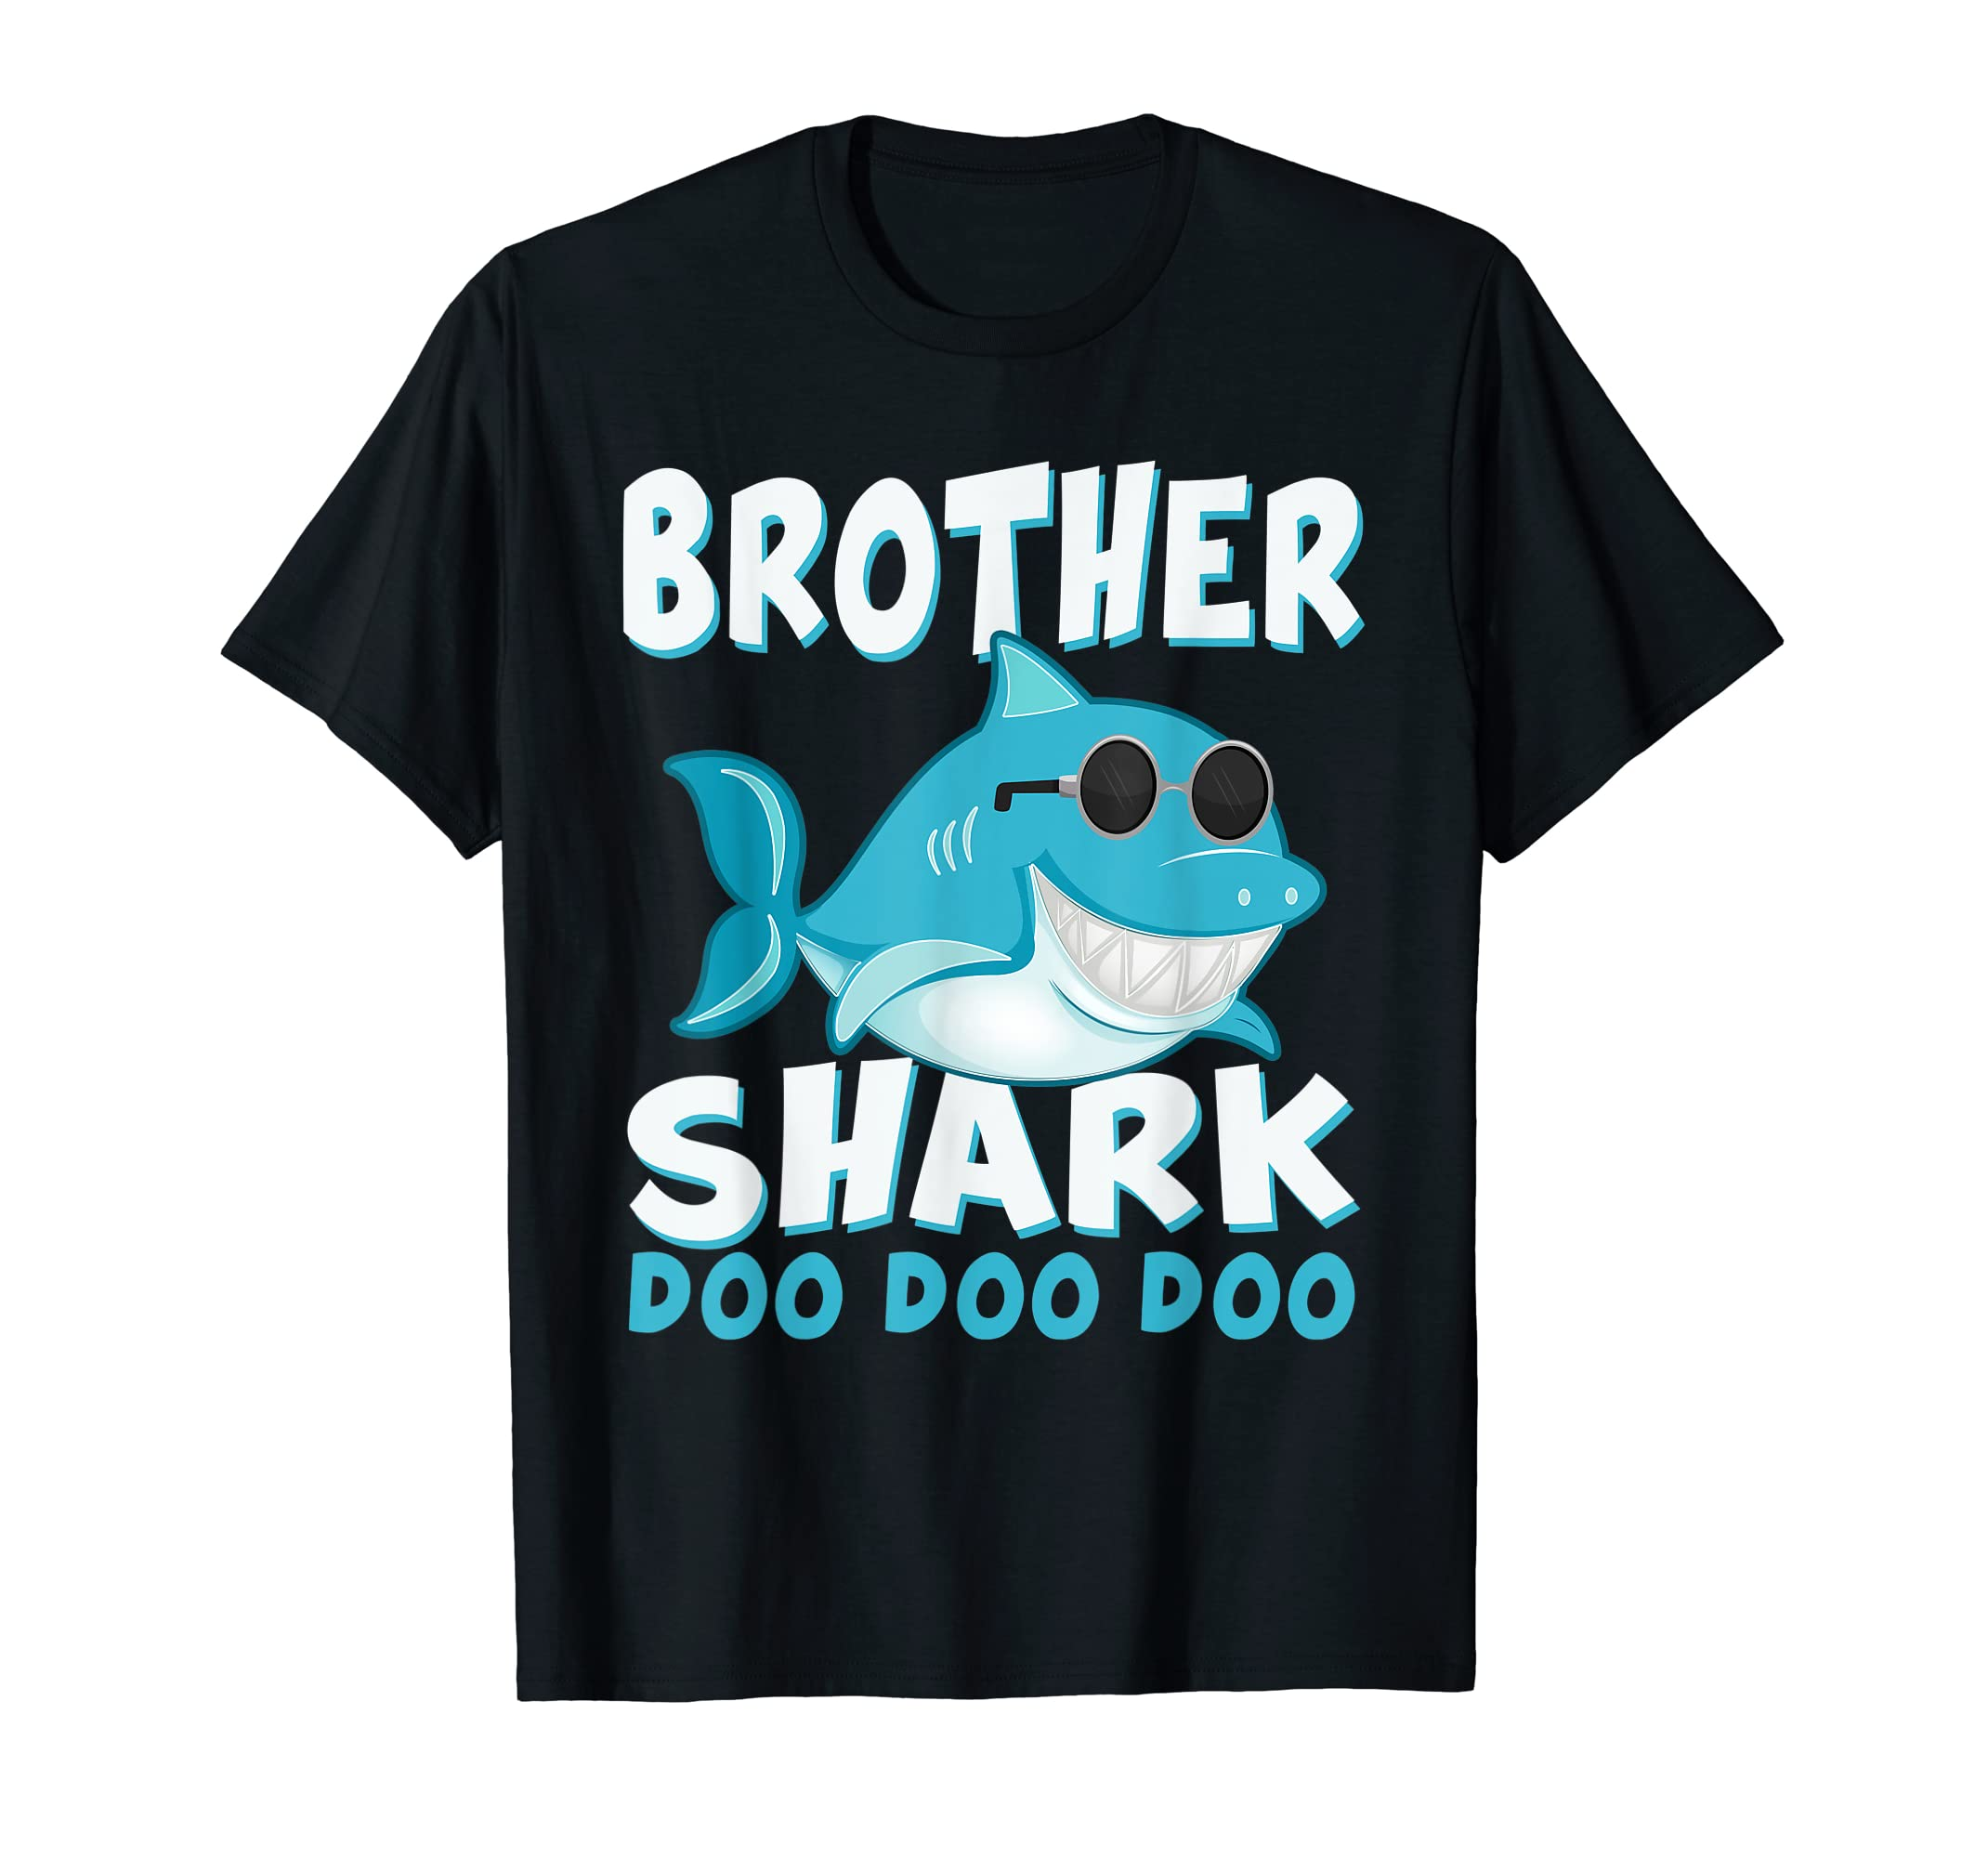 Retro Vintage Brother Shark Shirt Father's Day Gift Boy Kids-Men's T-Shirt-Black